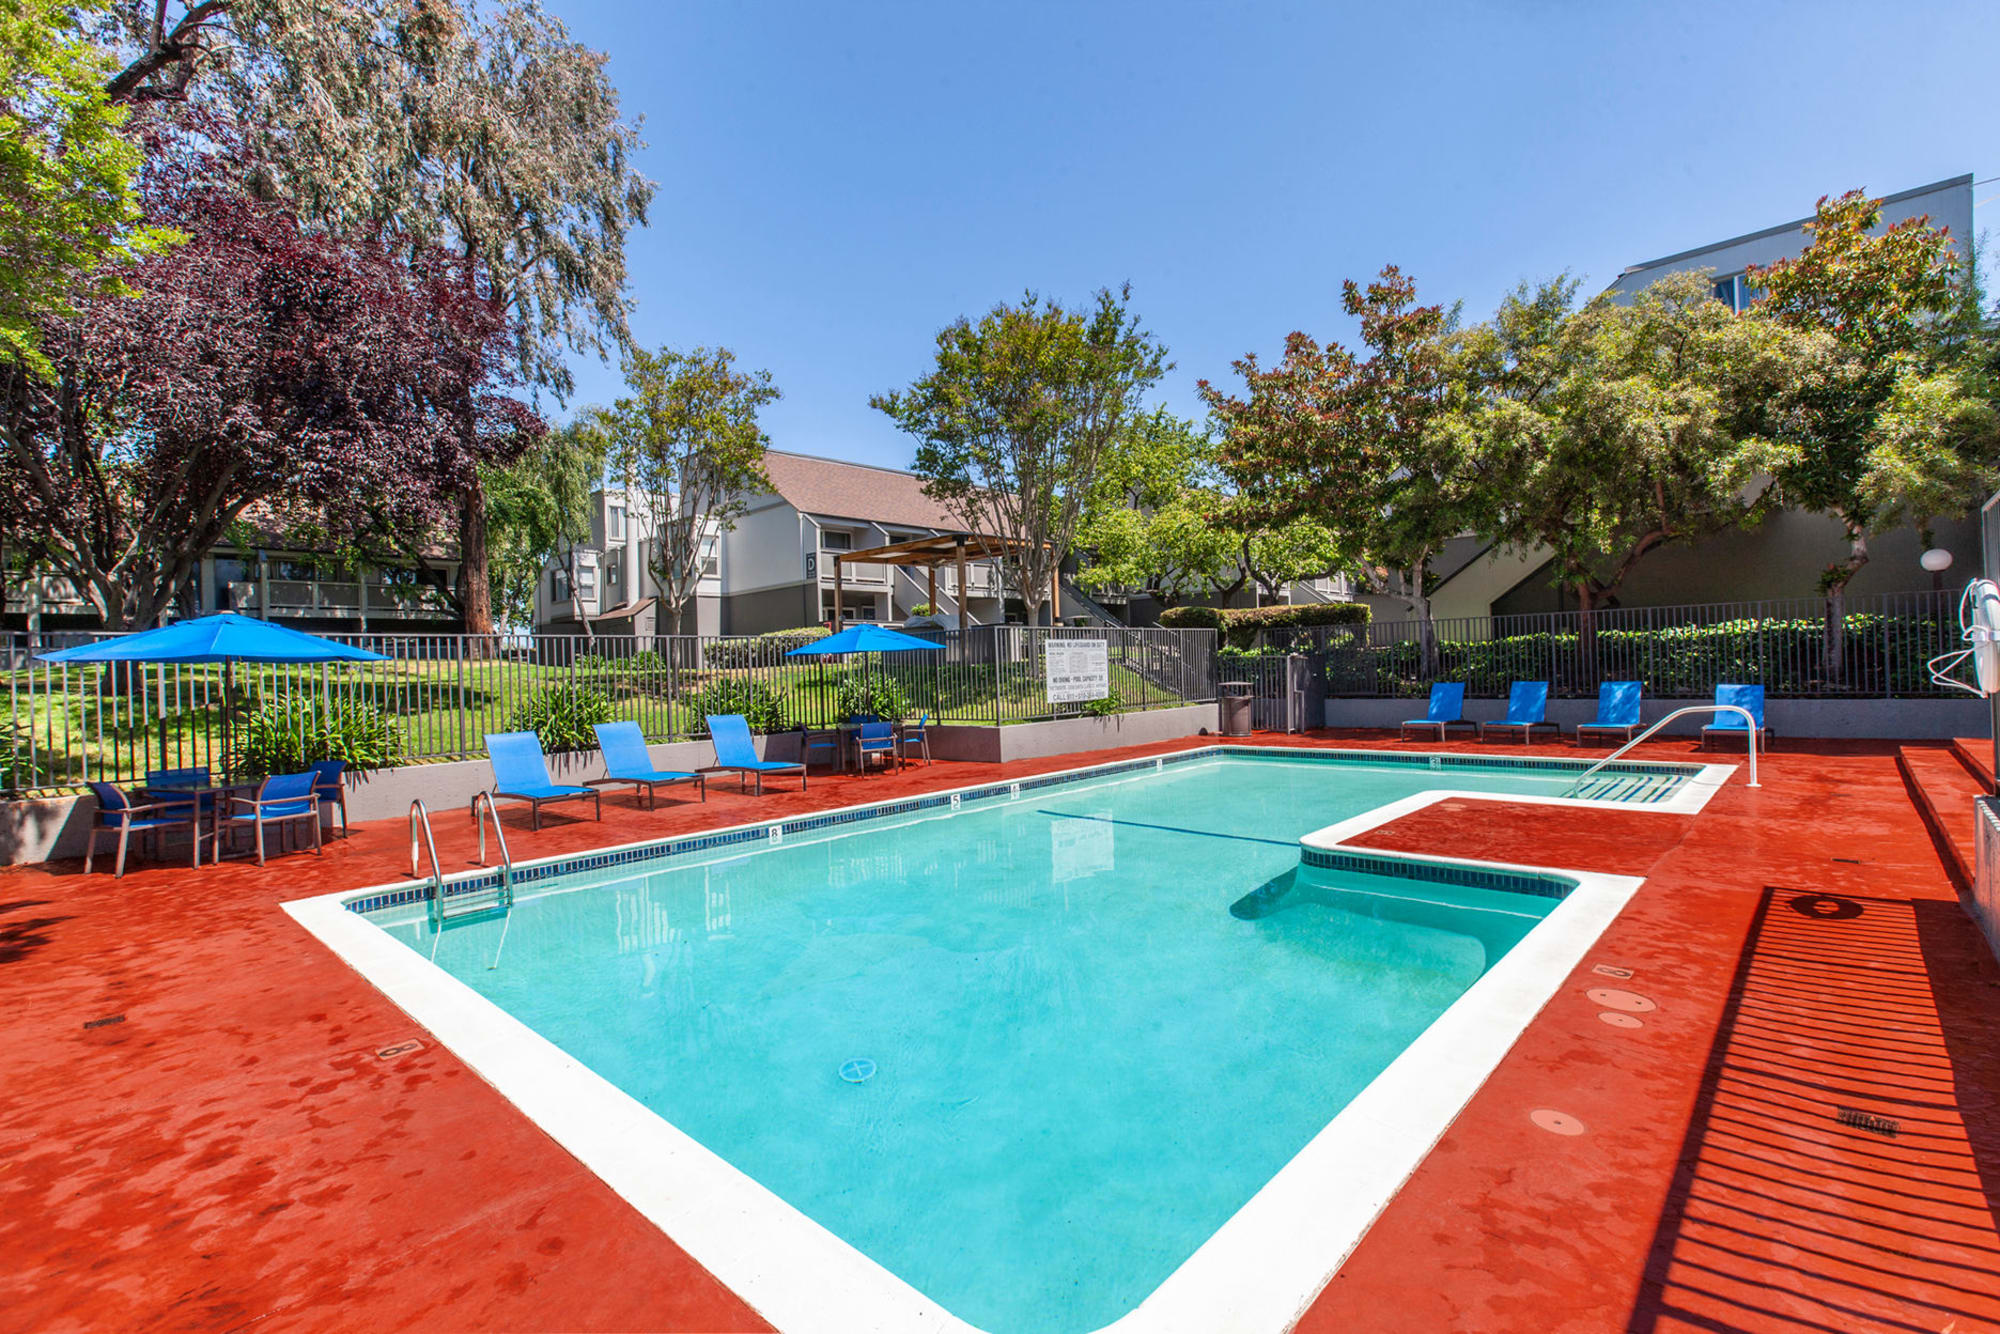 The pool at The Timbers Apartments in Hayward, California